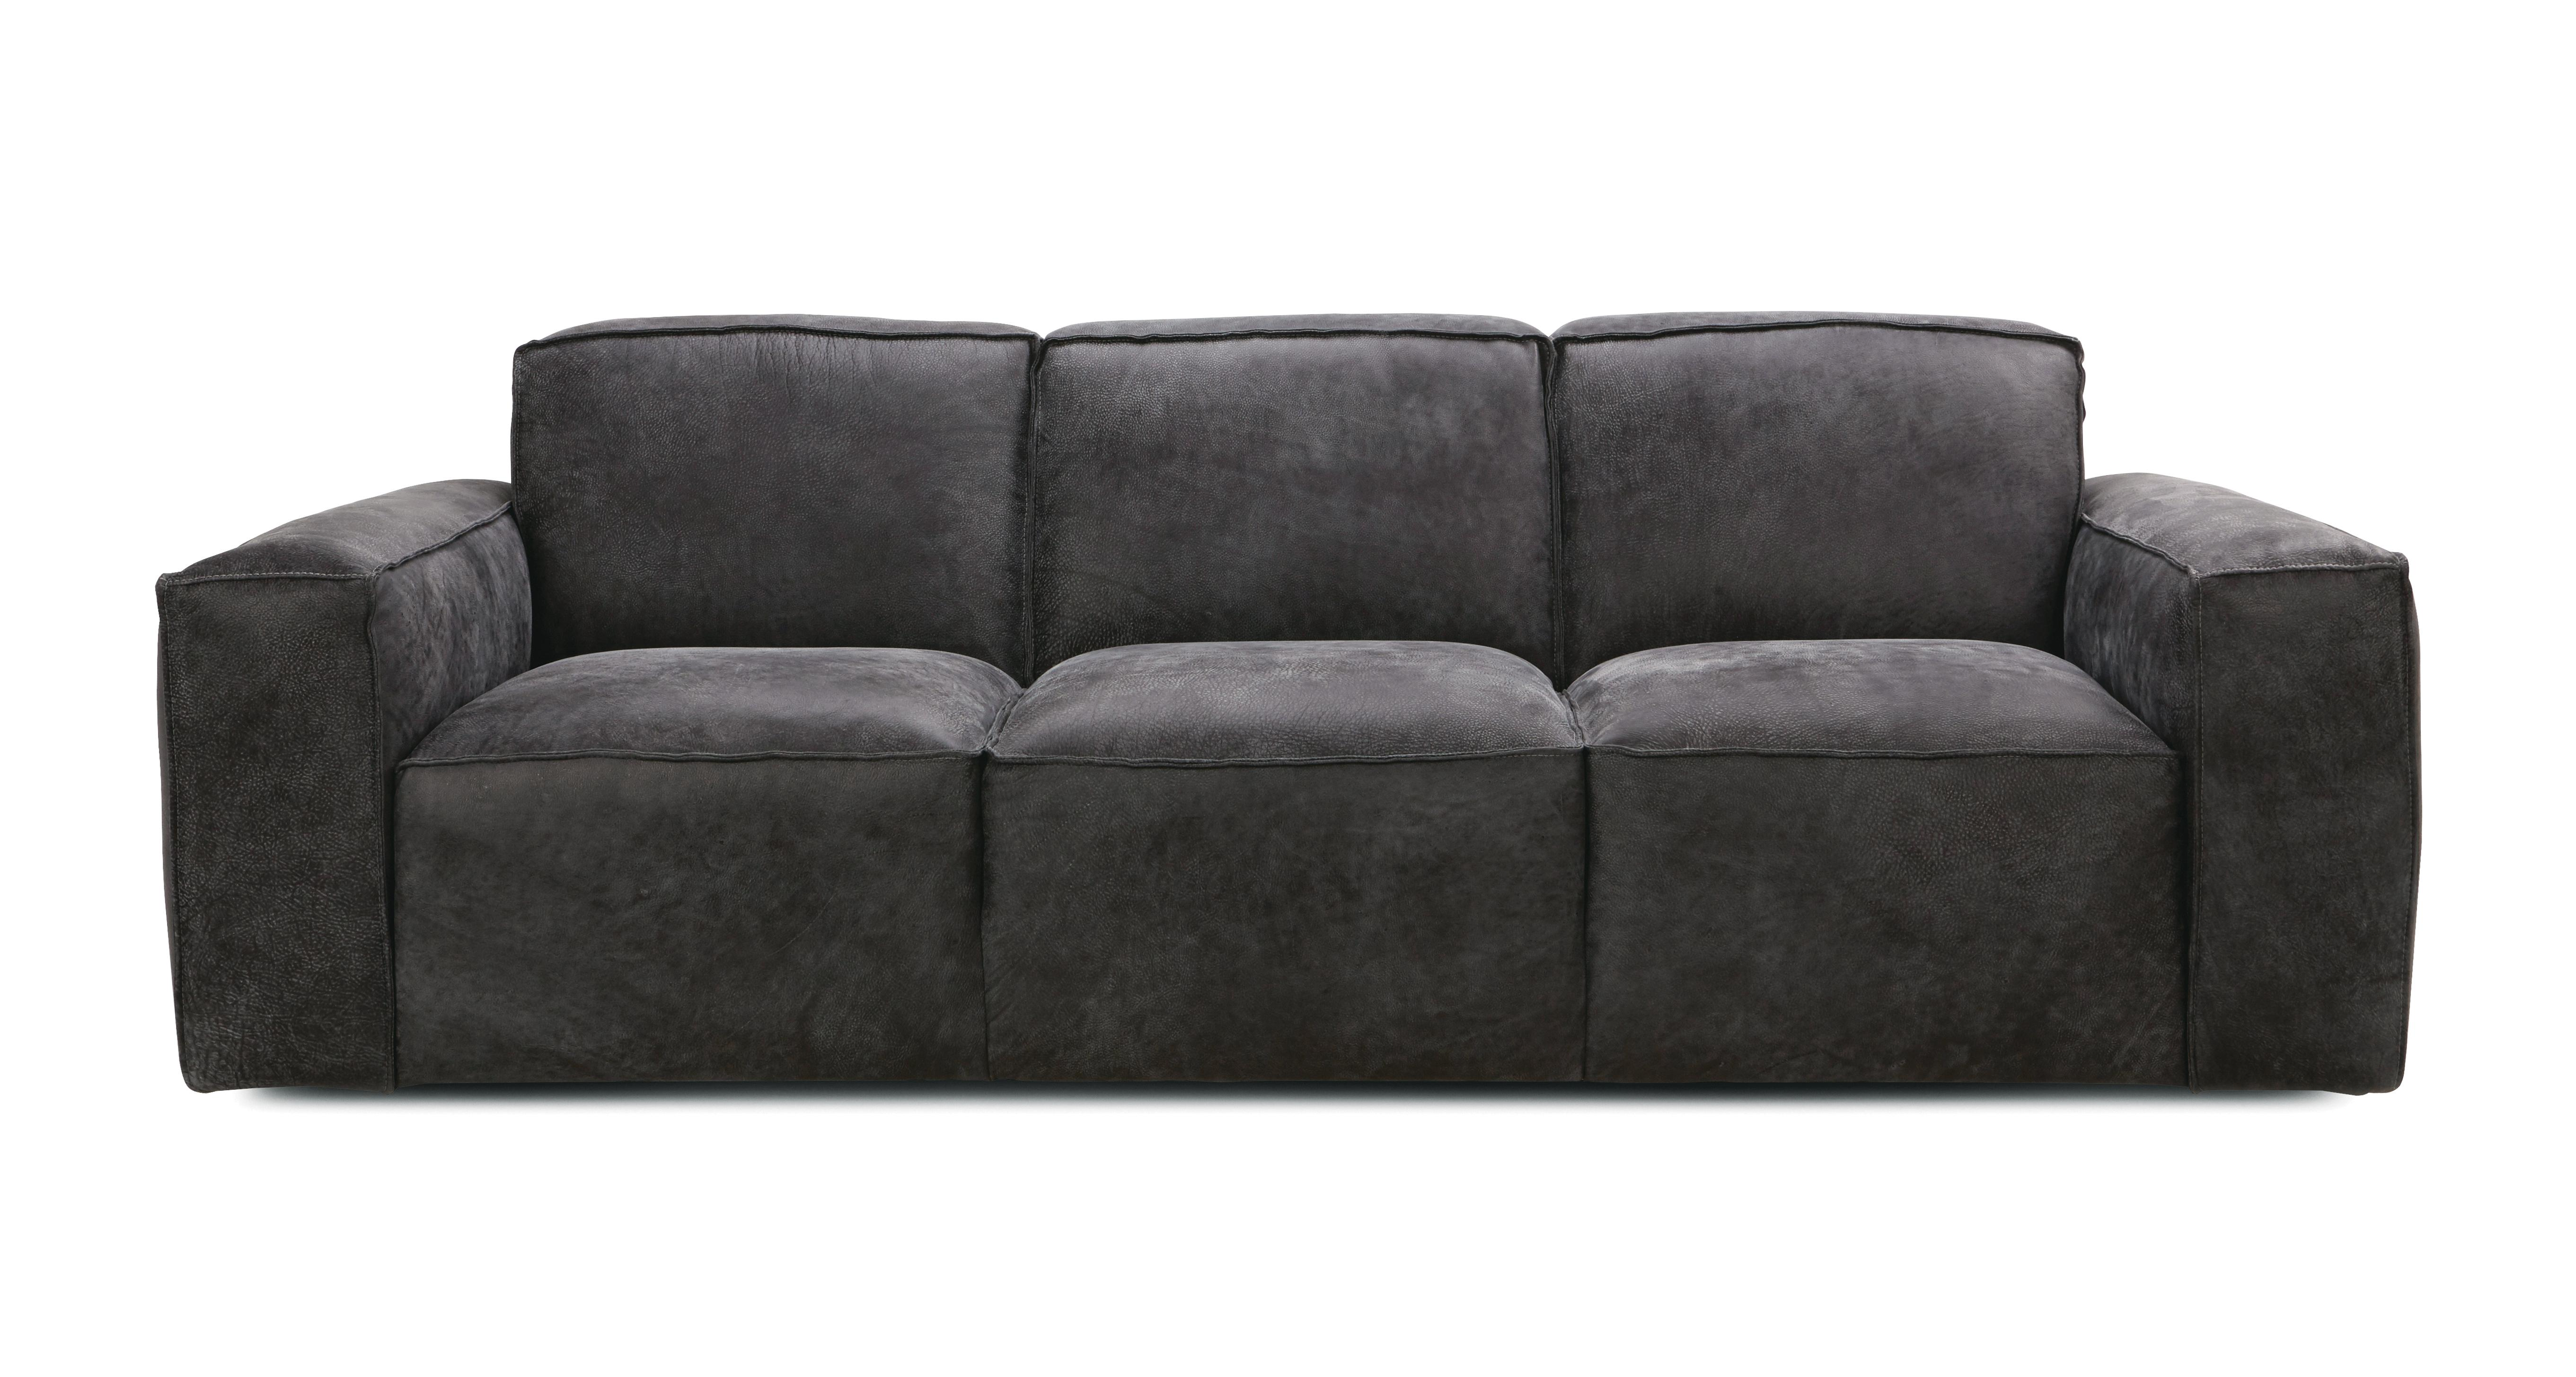 Dfs sofa 4 years interest free credit for Sofa 0 interest free credit